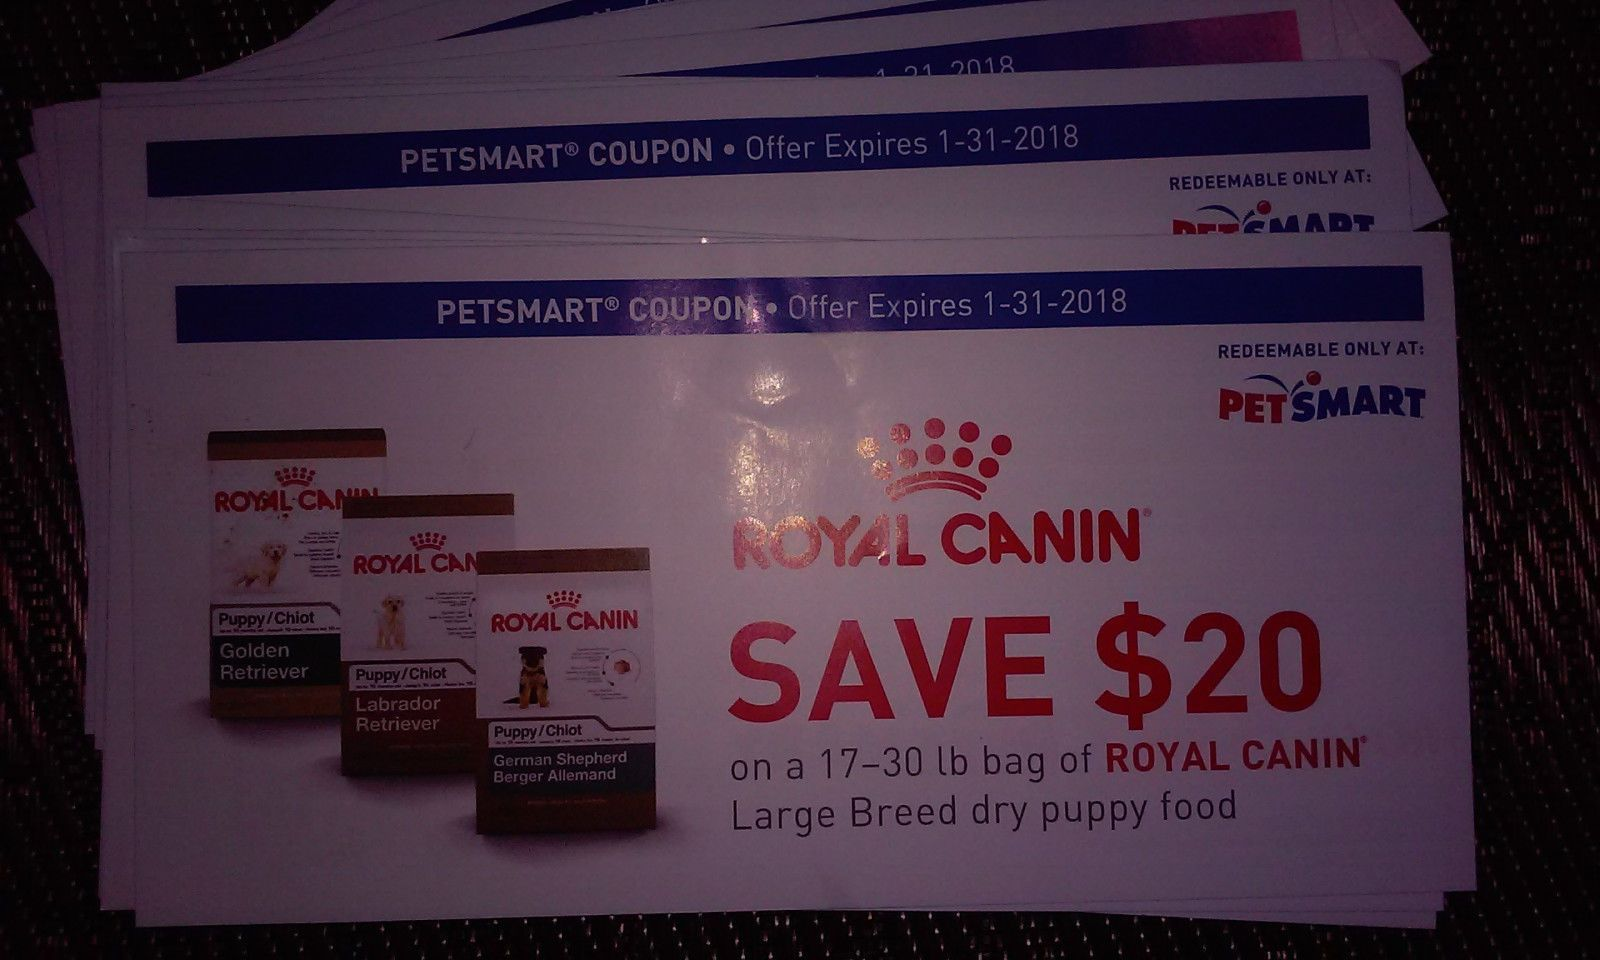 Cool 14x Petsmart Royal Canin Coupon 20 Off Dry Puppy Food Puppy Food Royal Canin Petsmart